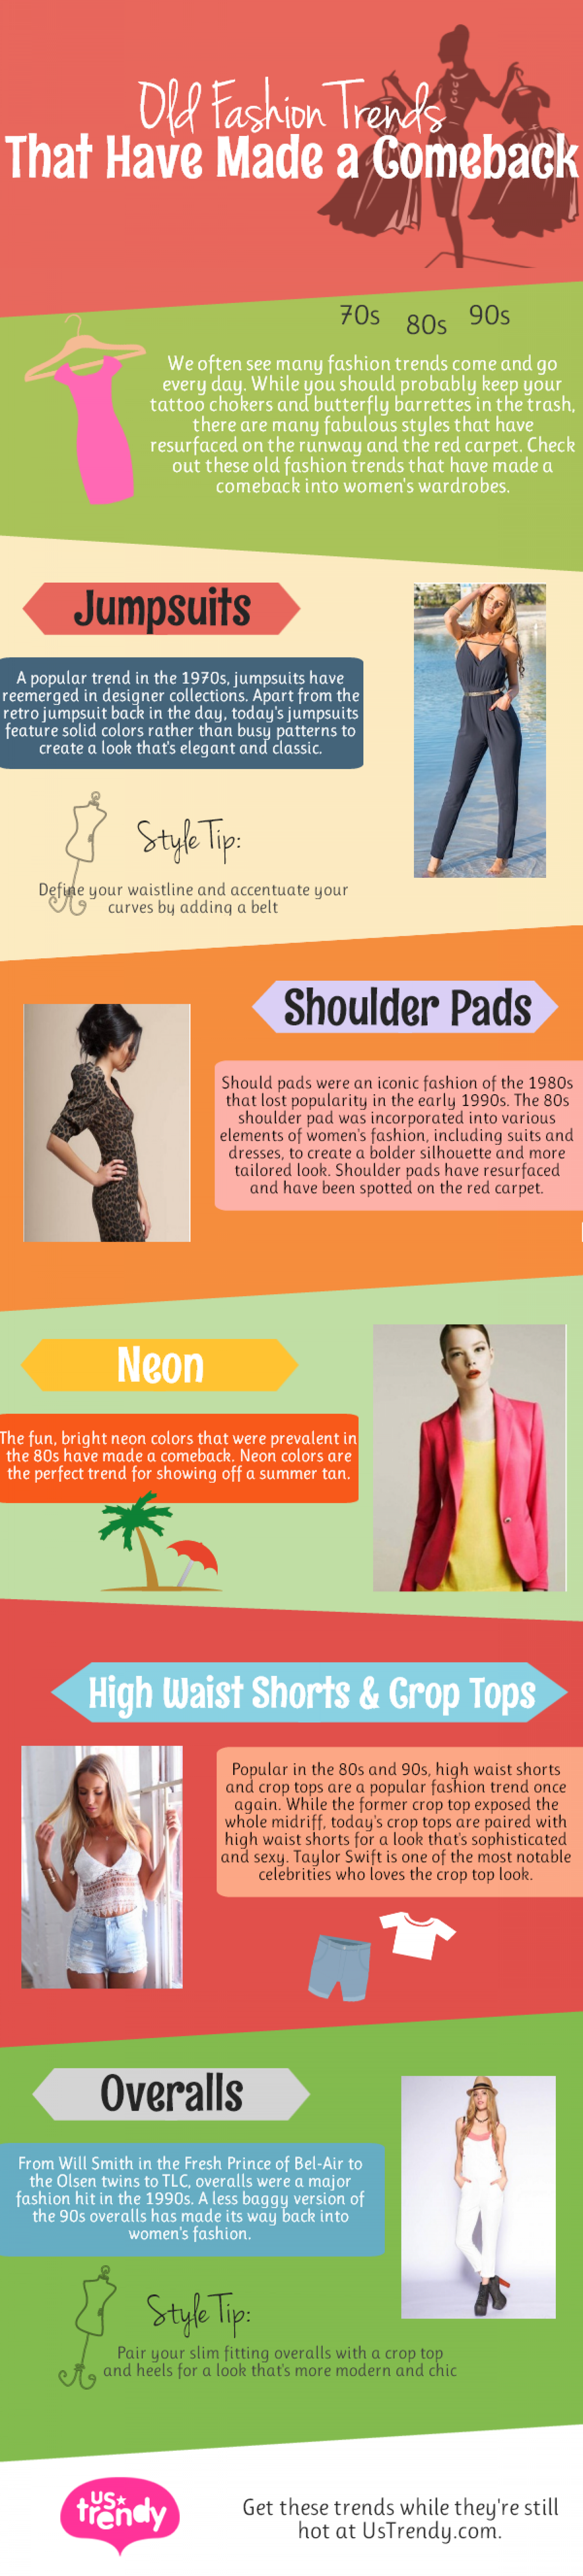 Old Fashion Trends That Have Made a Comeback Infographic